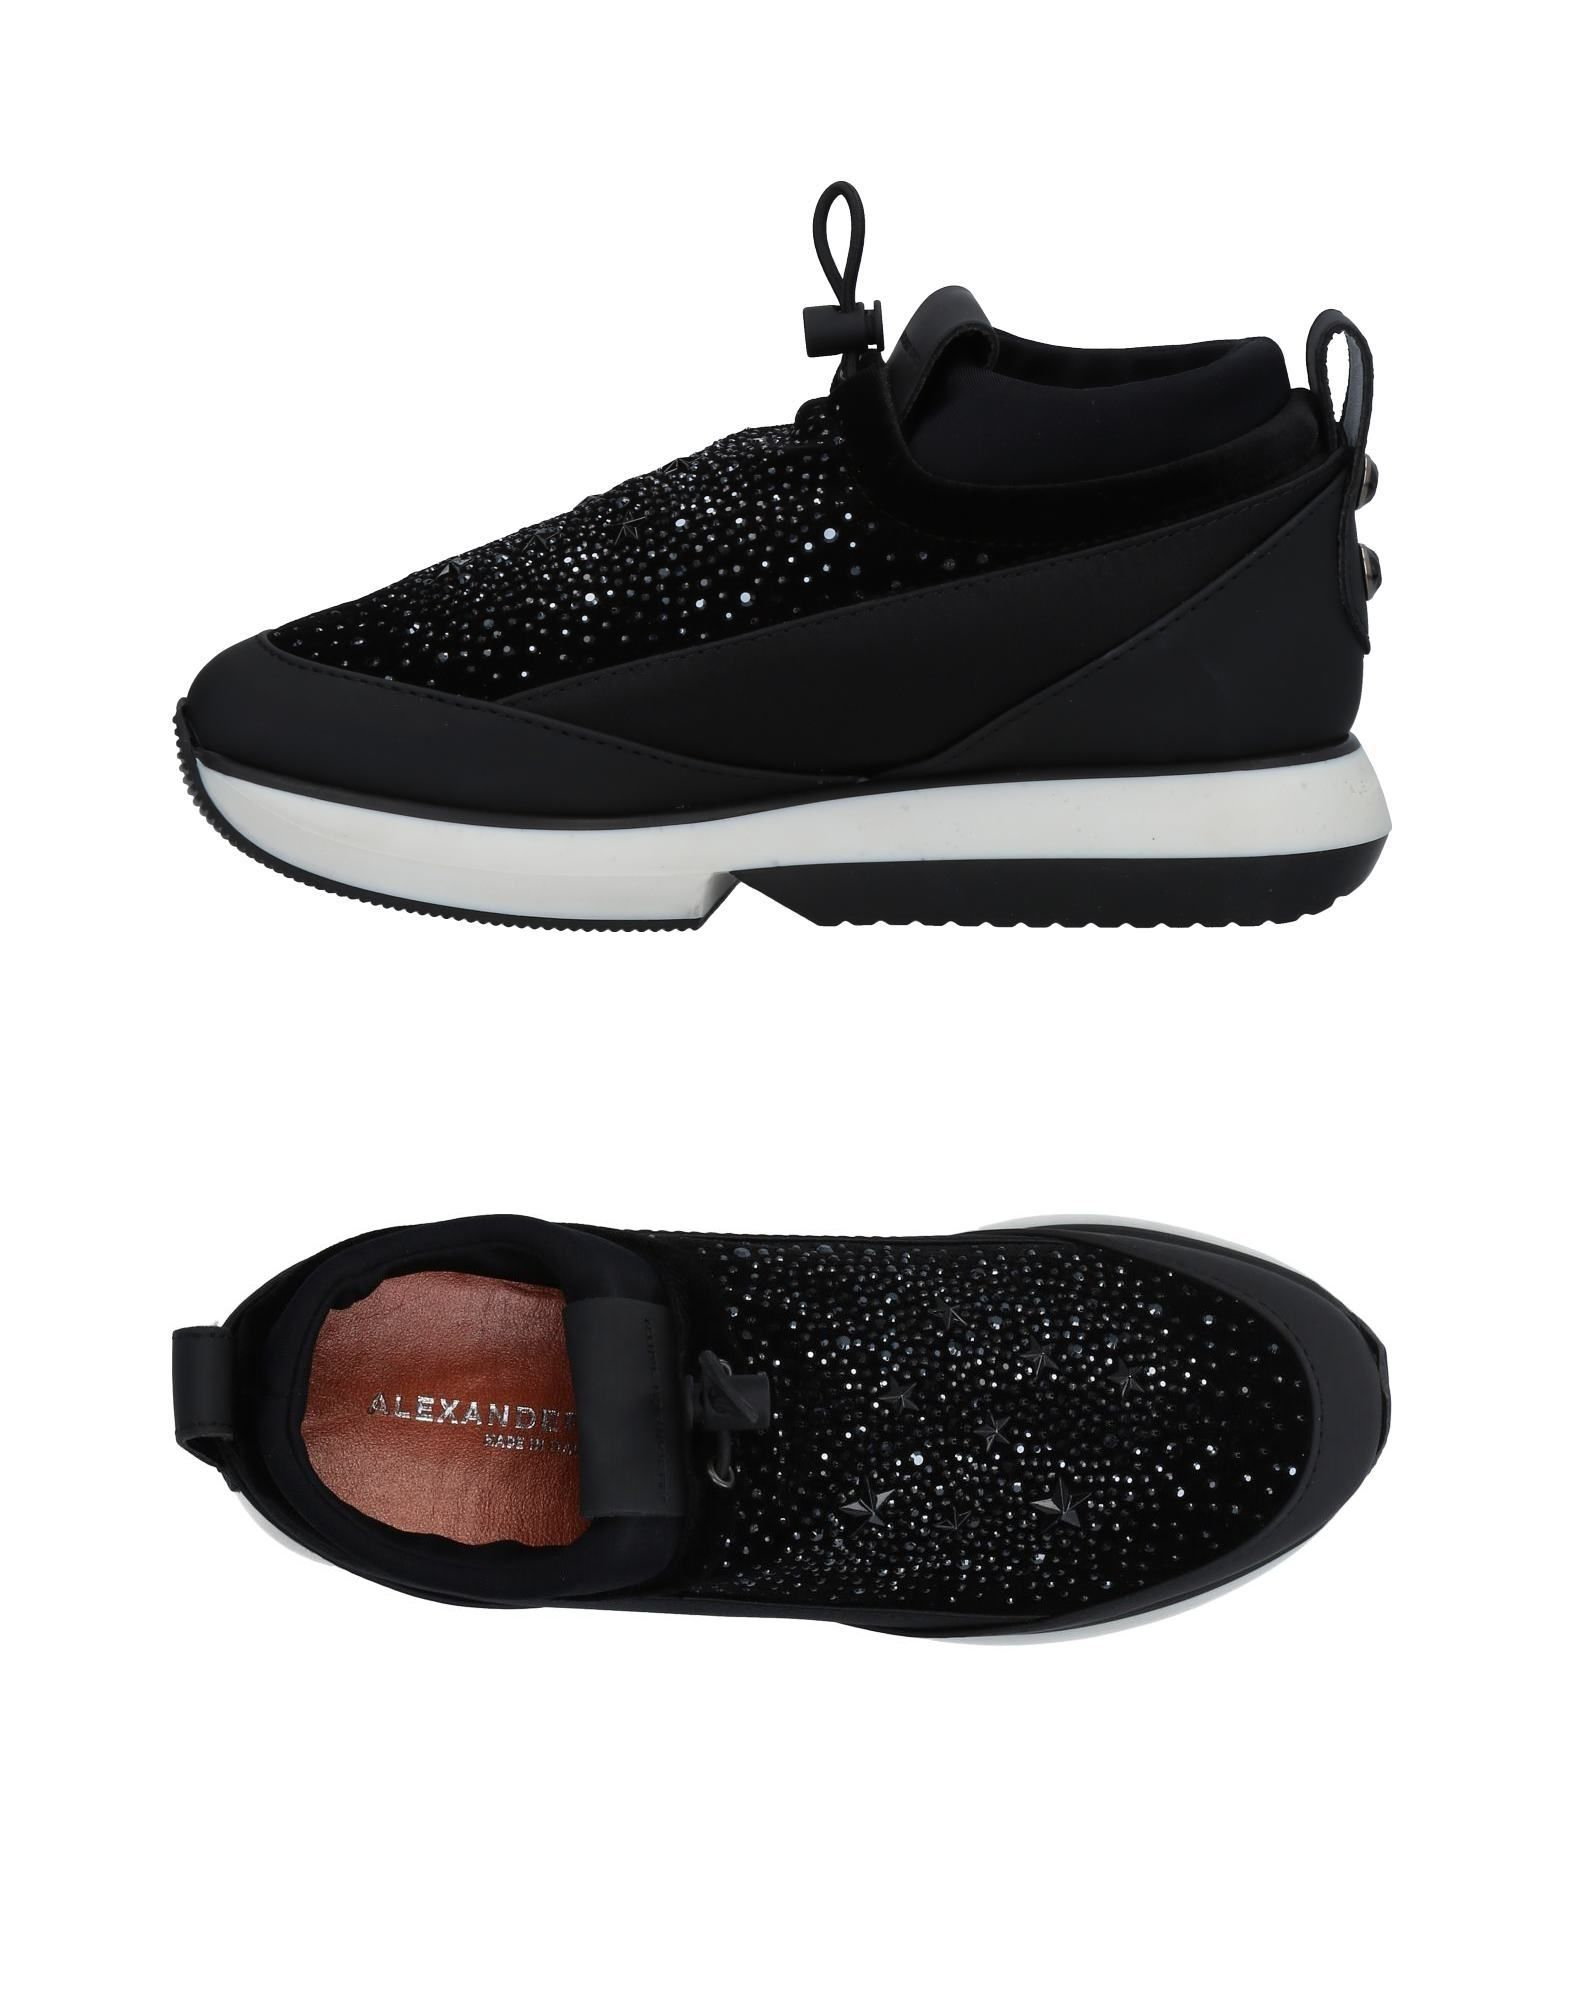 Sneakers Alexander Smith Donna - Acquista online su